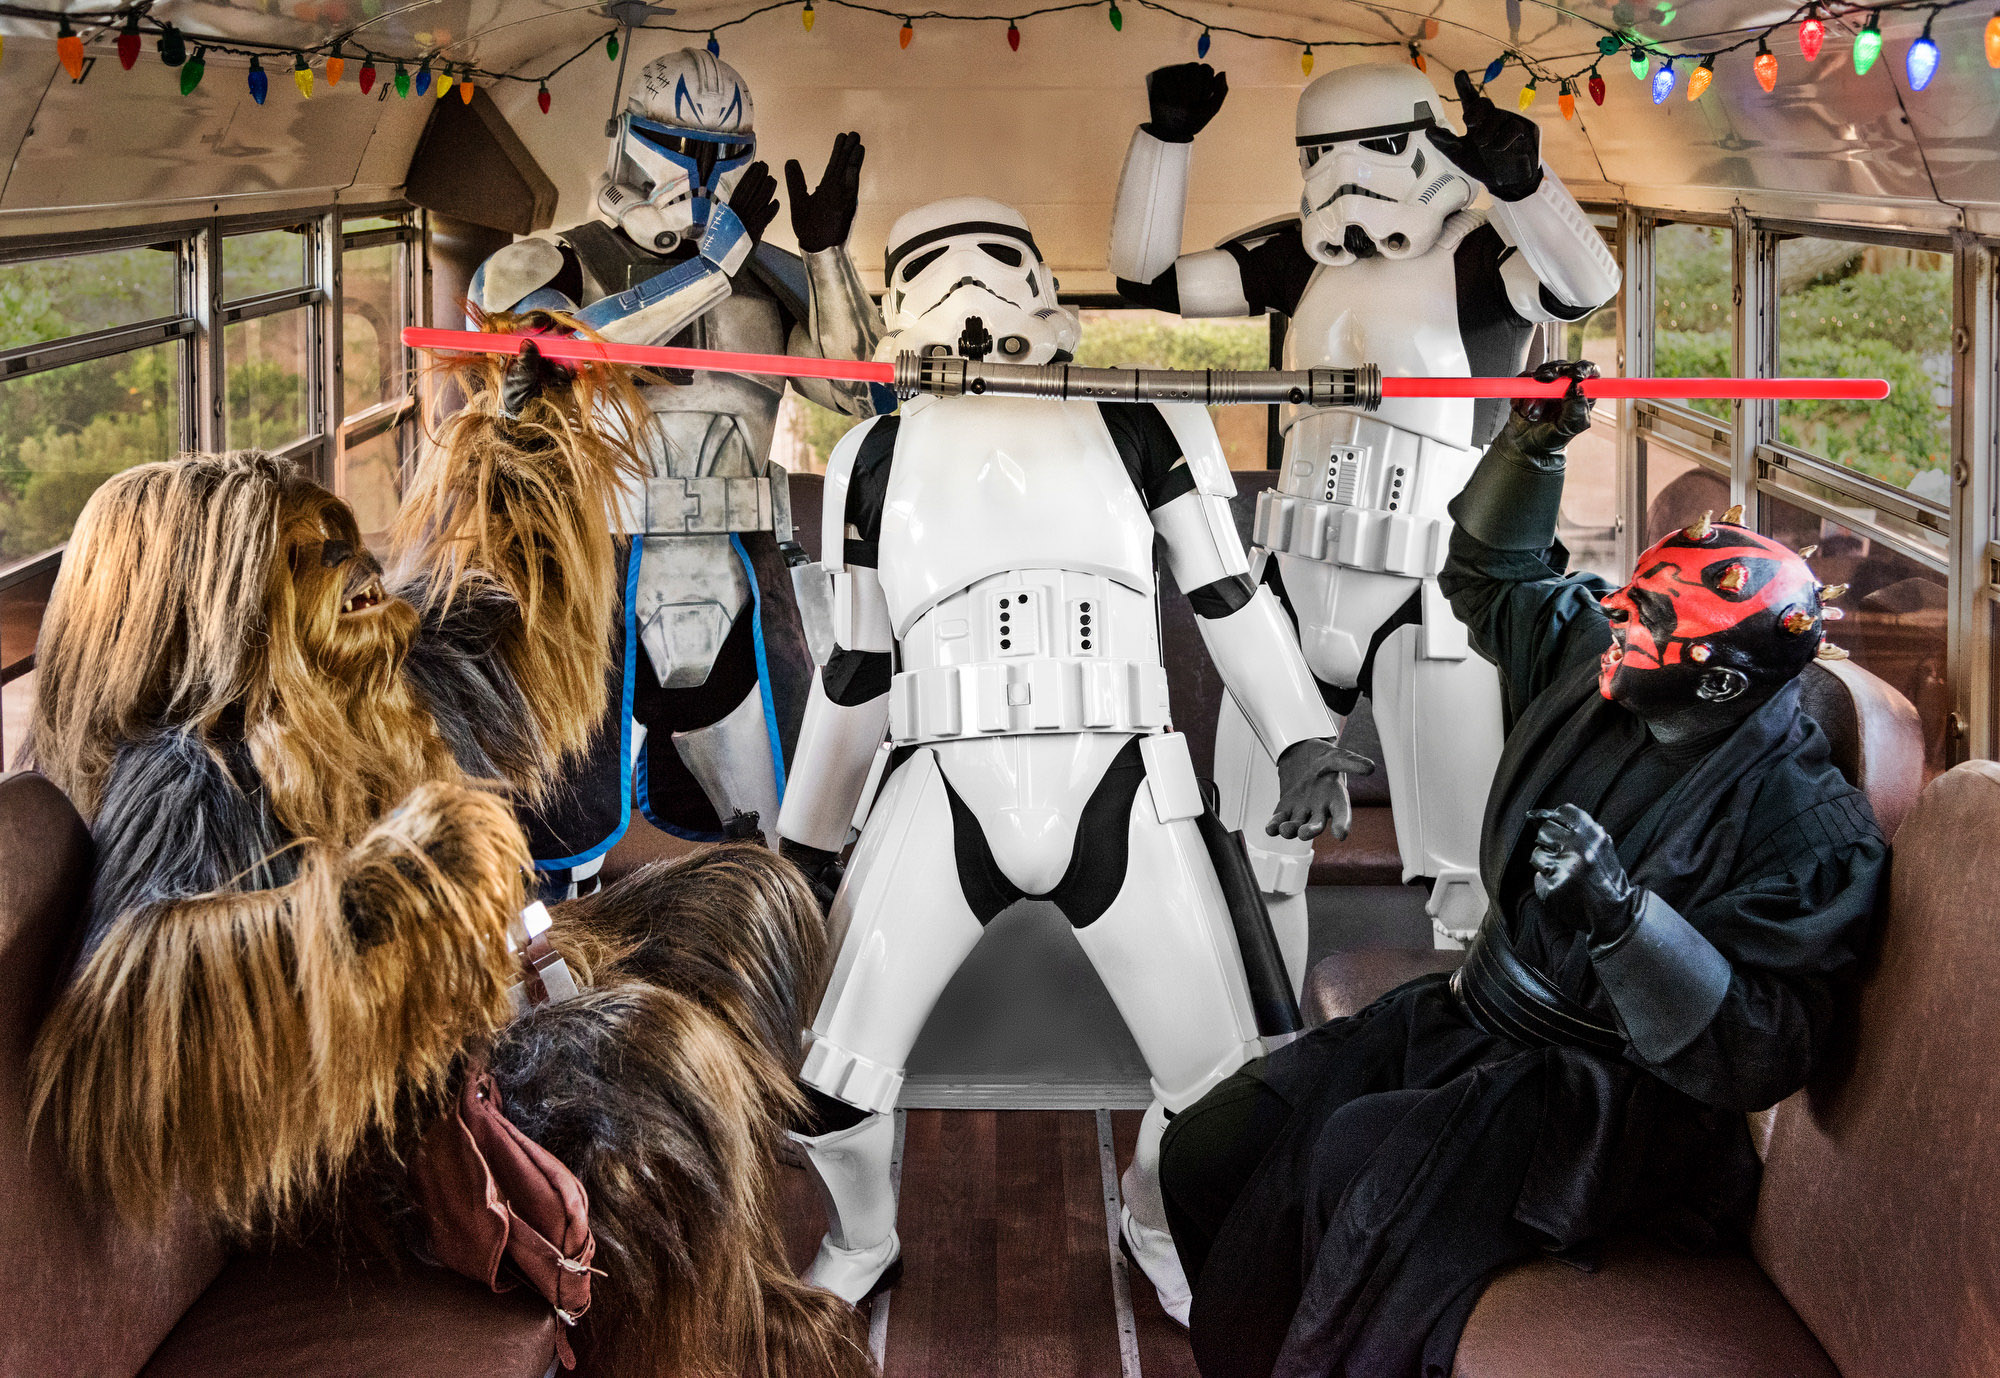 Star wars bridal party - funny photo by Jerry Ghionis